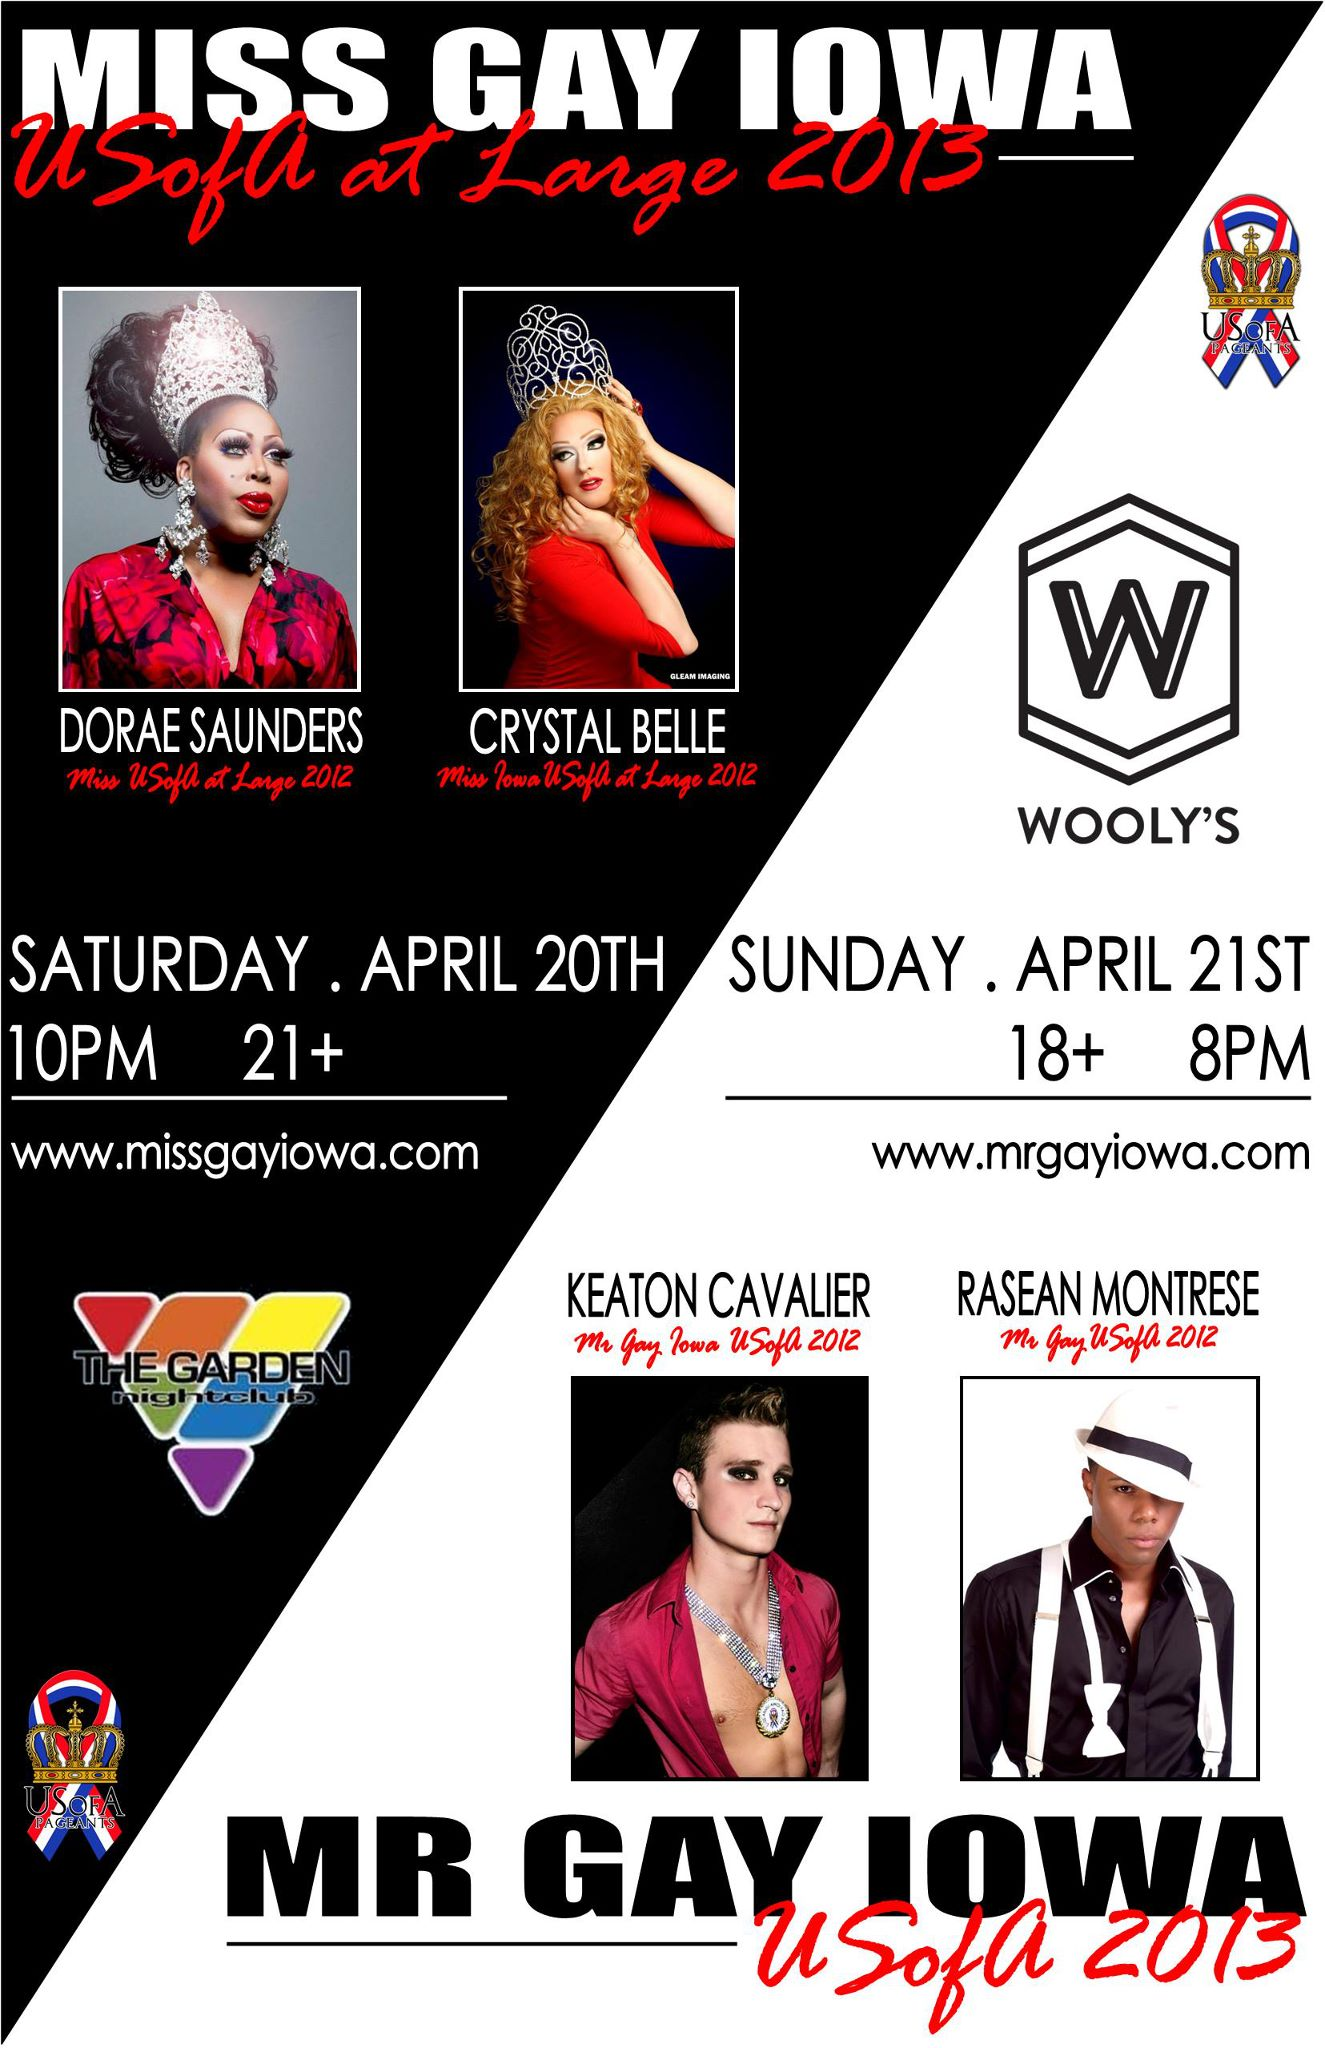 Show Ad | Miss Gay Iowa USofa at Large and Mr. Gay Iowa USofA | 4/20-4/21/2013